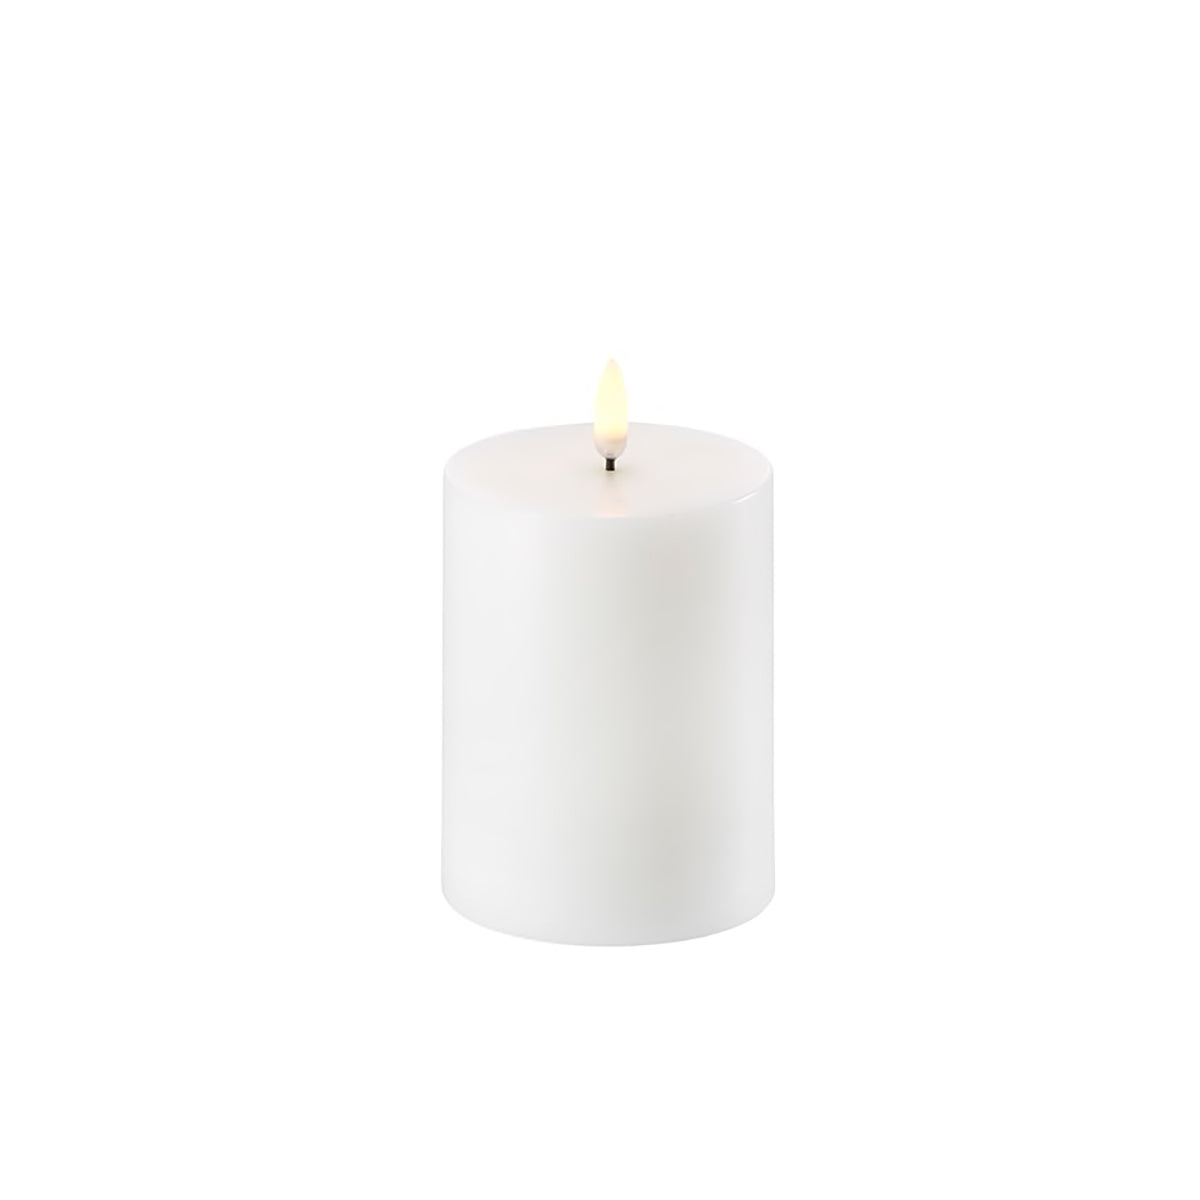 Uyuni Single Wick Pillar Candle Nordic White 7.8cm x 10.1cm